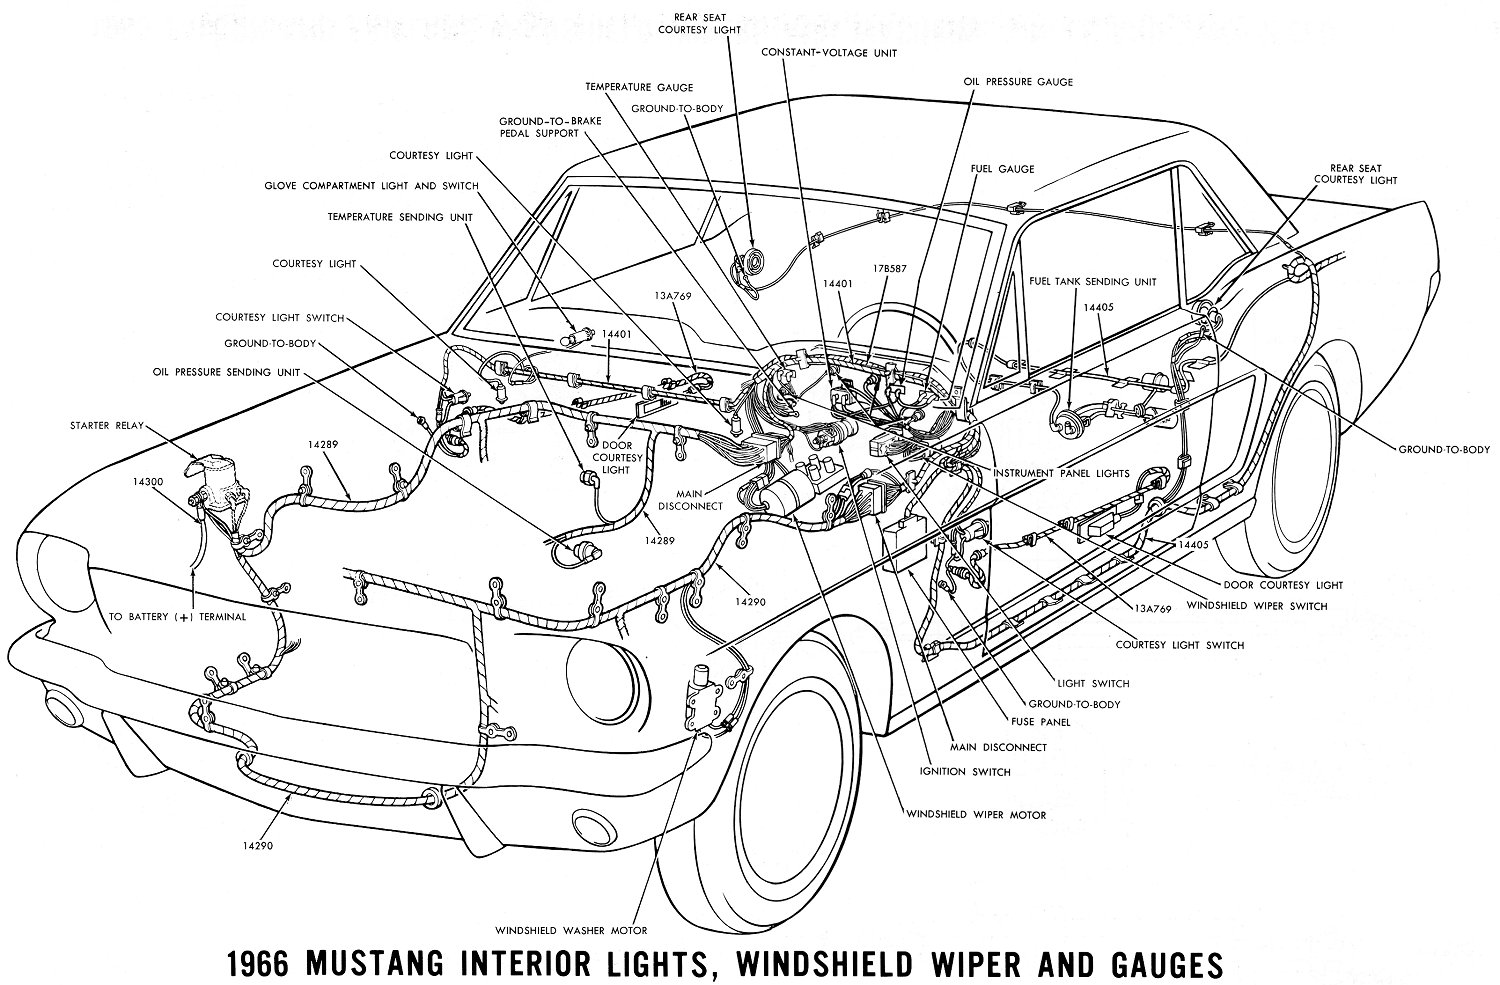 66inter 1966 mustang wiring diagrams average joe restoration 68 Mustang Wiring Diagram at webbmarketing.co